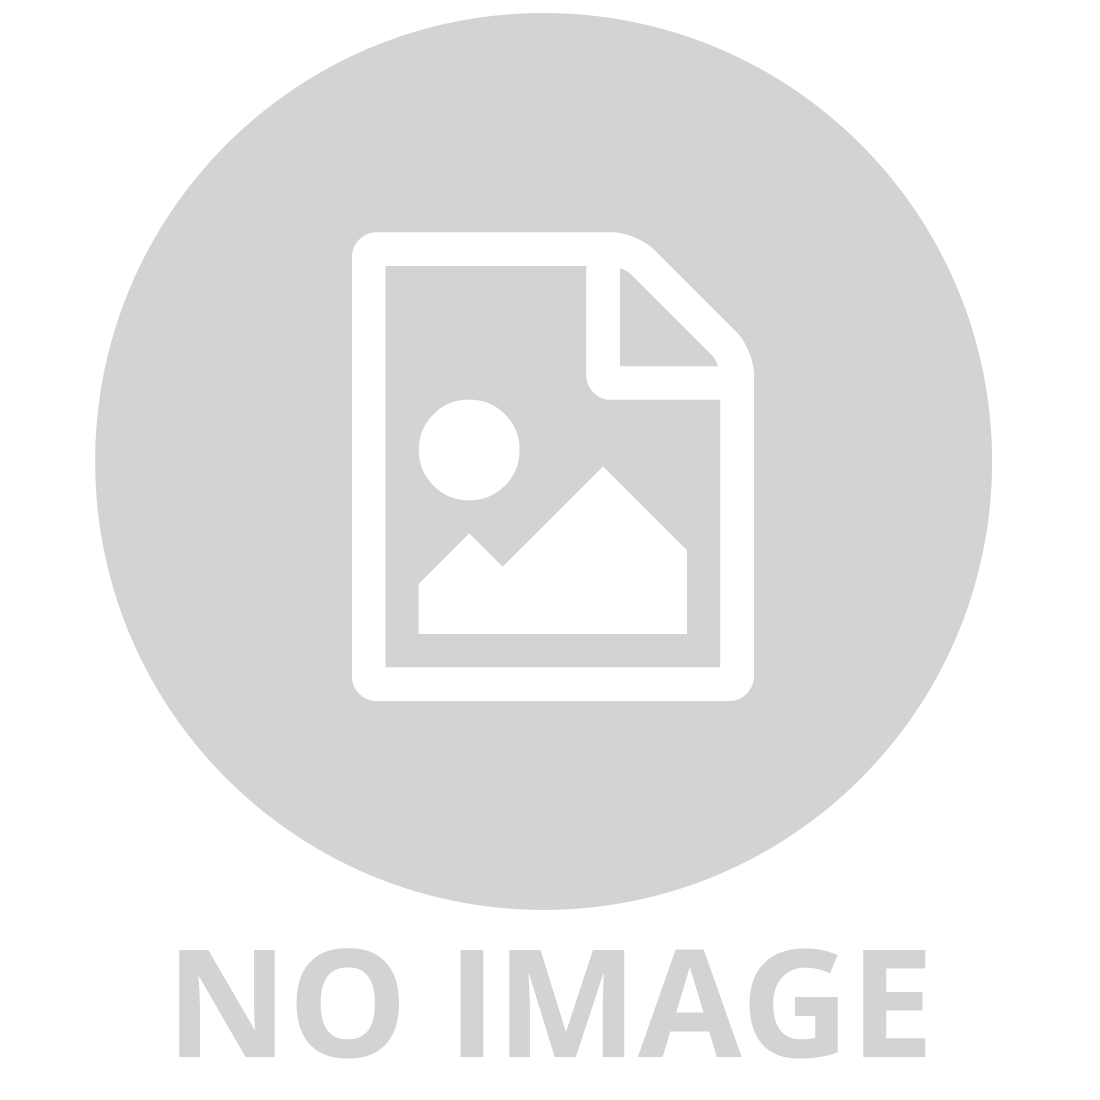 Sara Desk Lamp Black A13011 ES